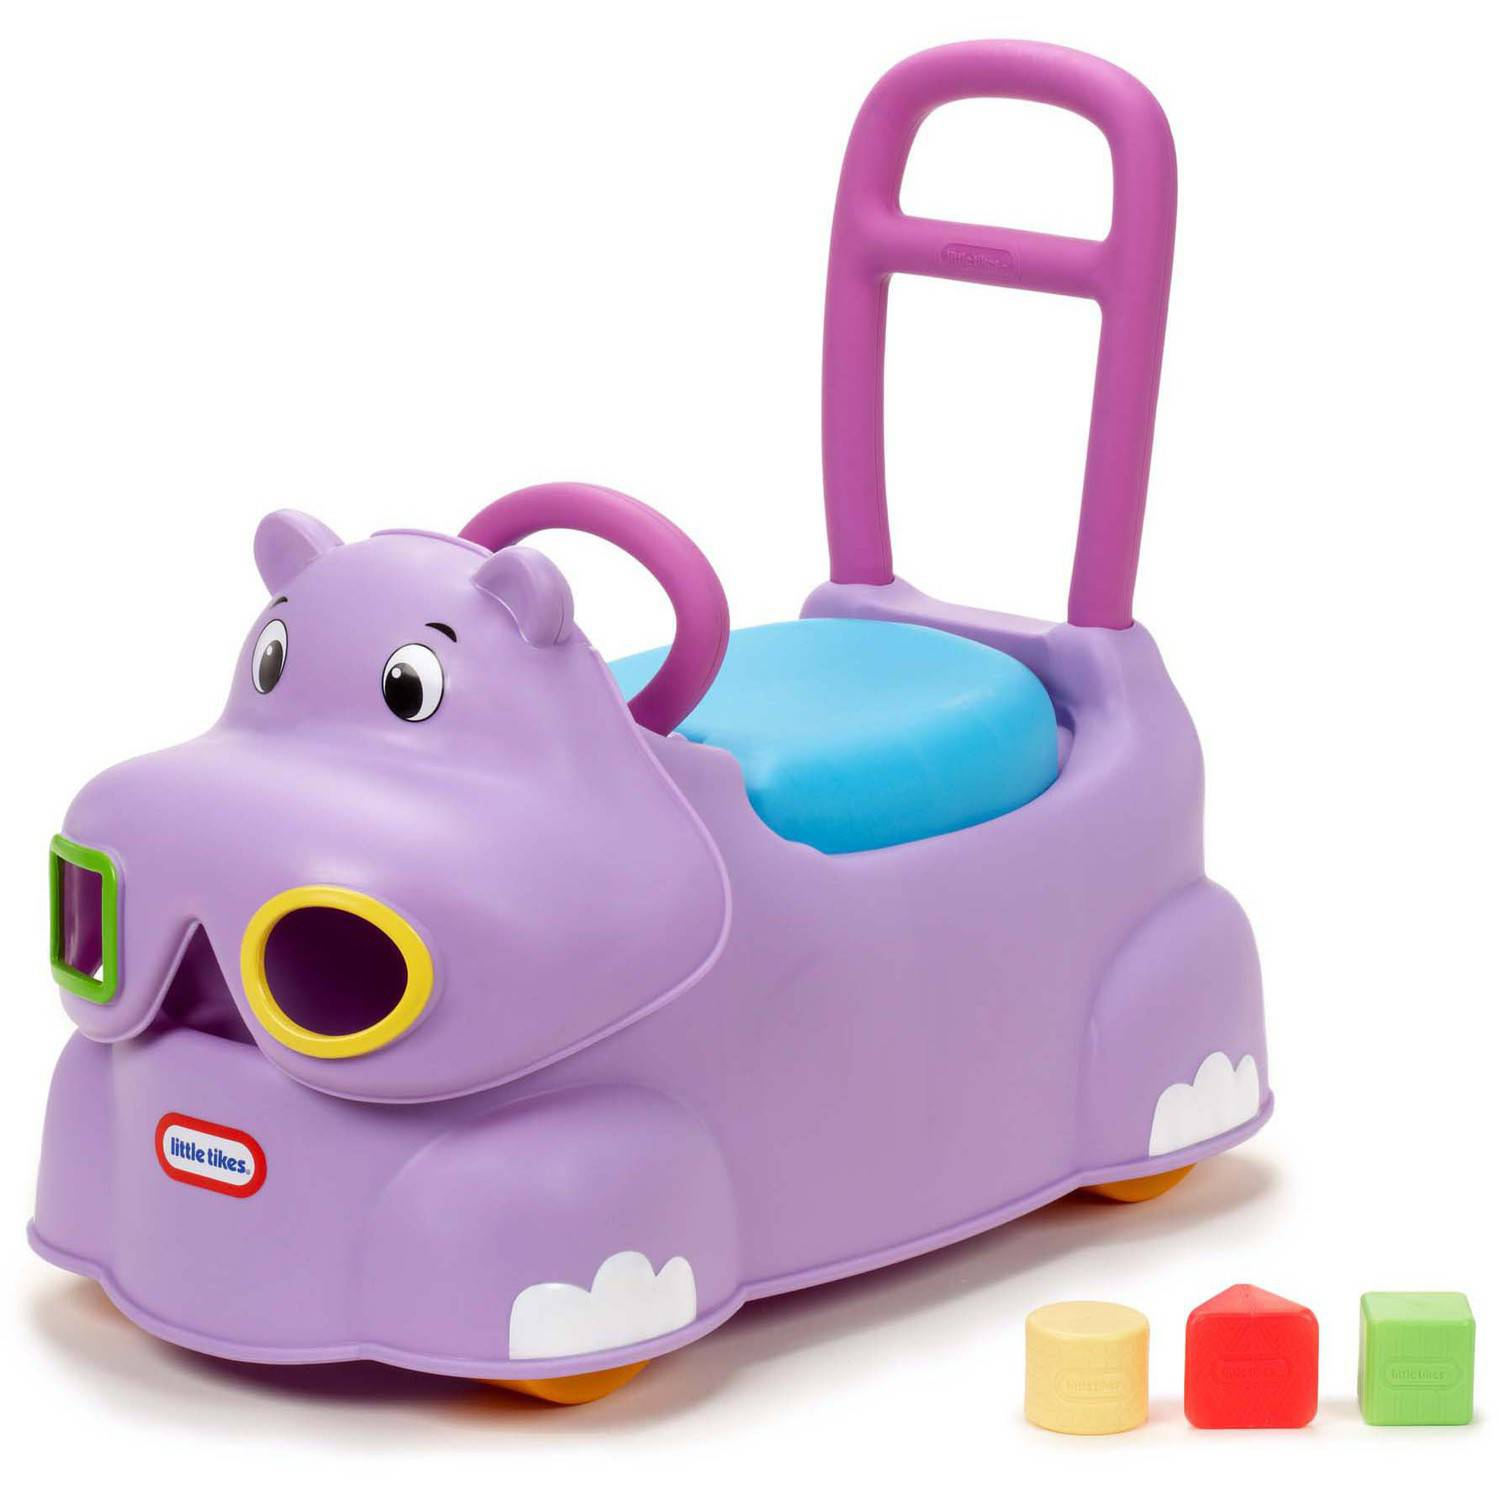 Little Tikes Scoot-Around Animal Riding Toy, Hippo by MGA Entertainment